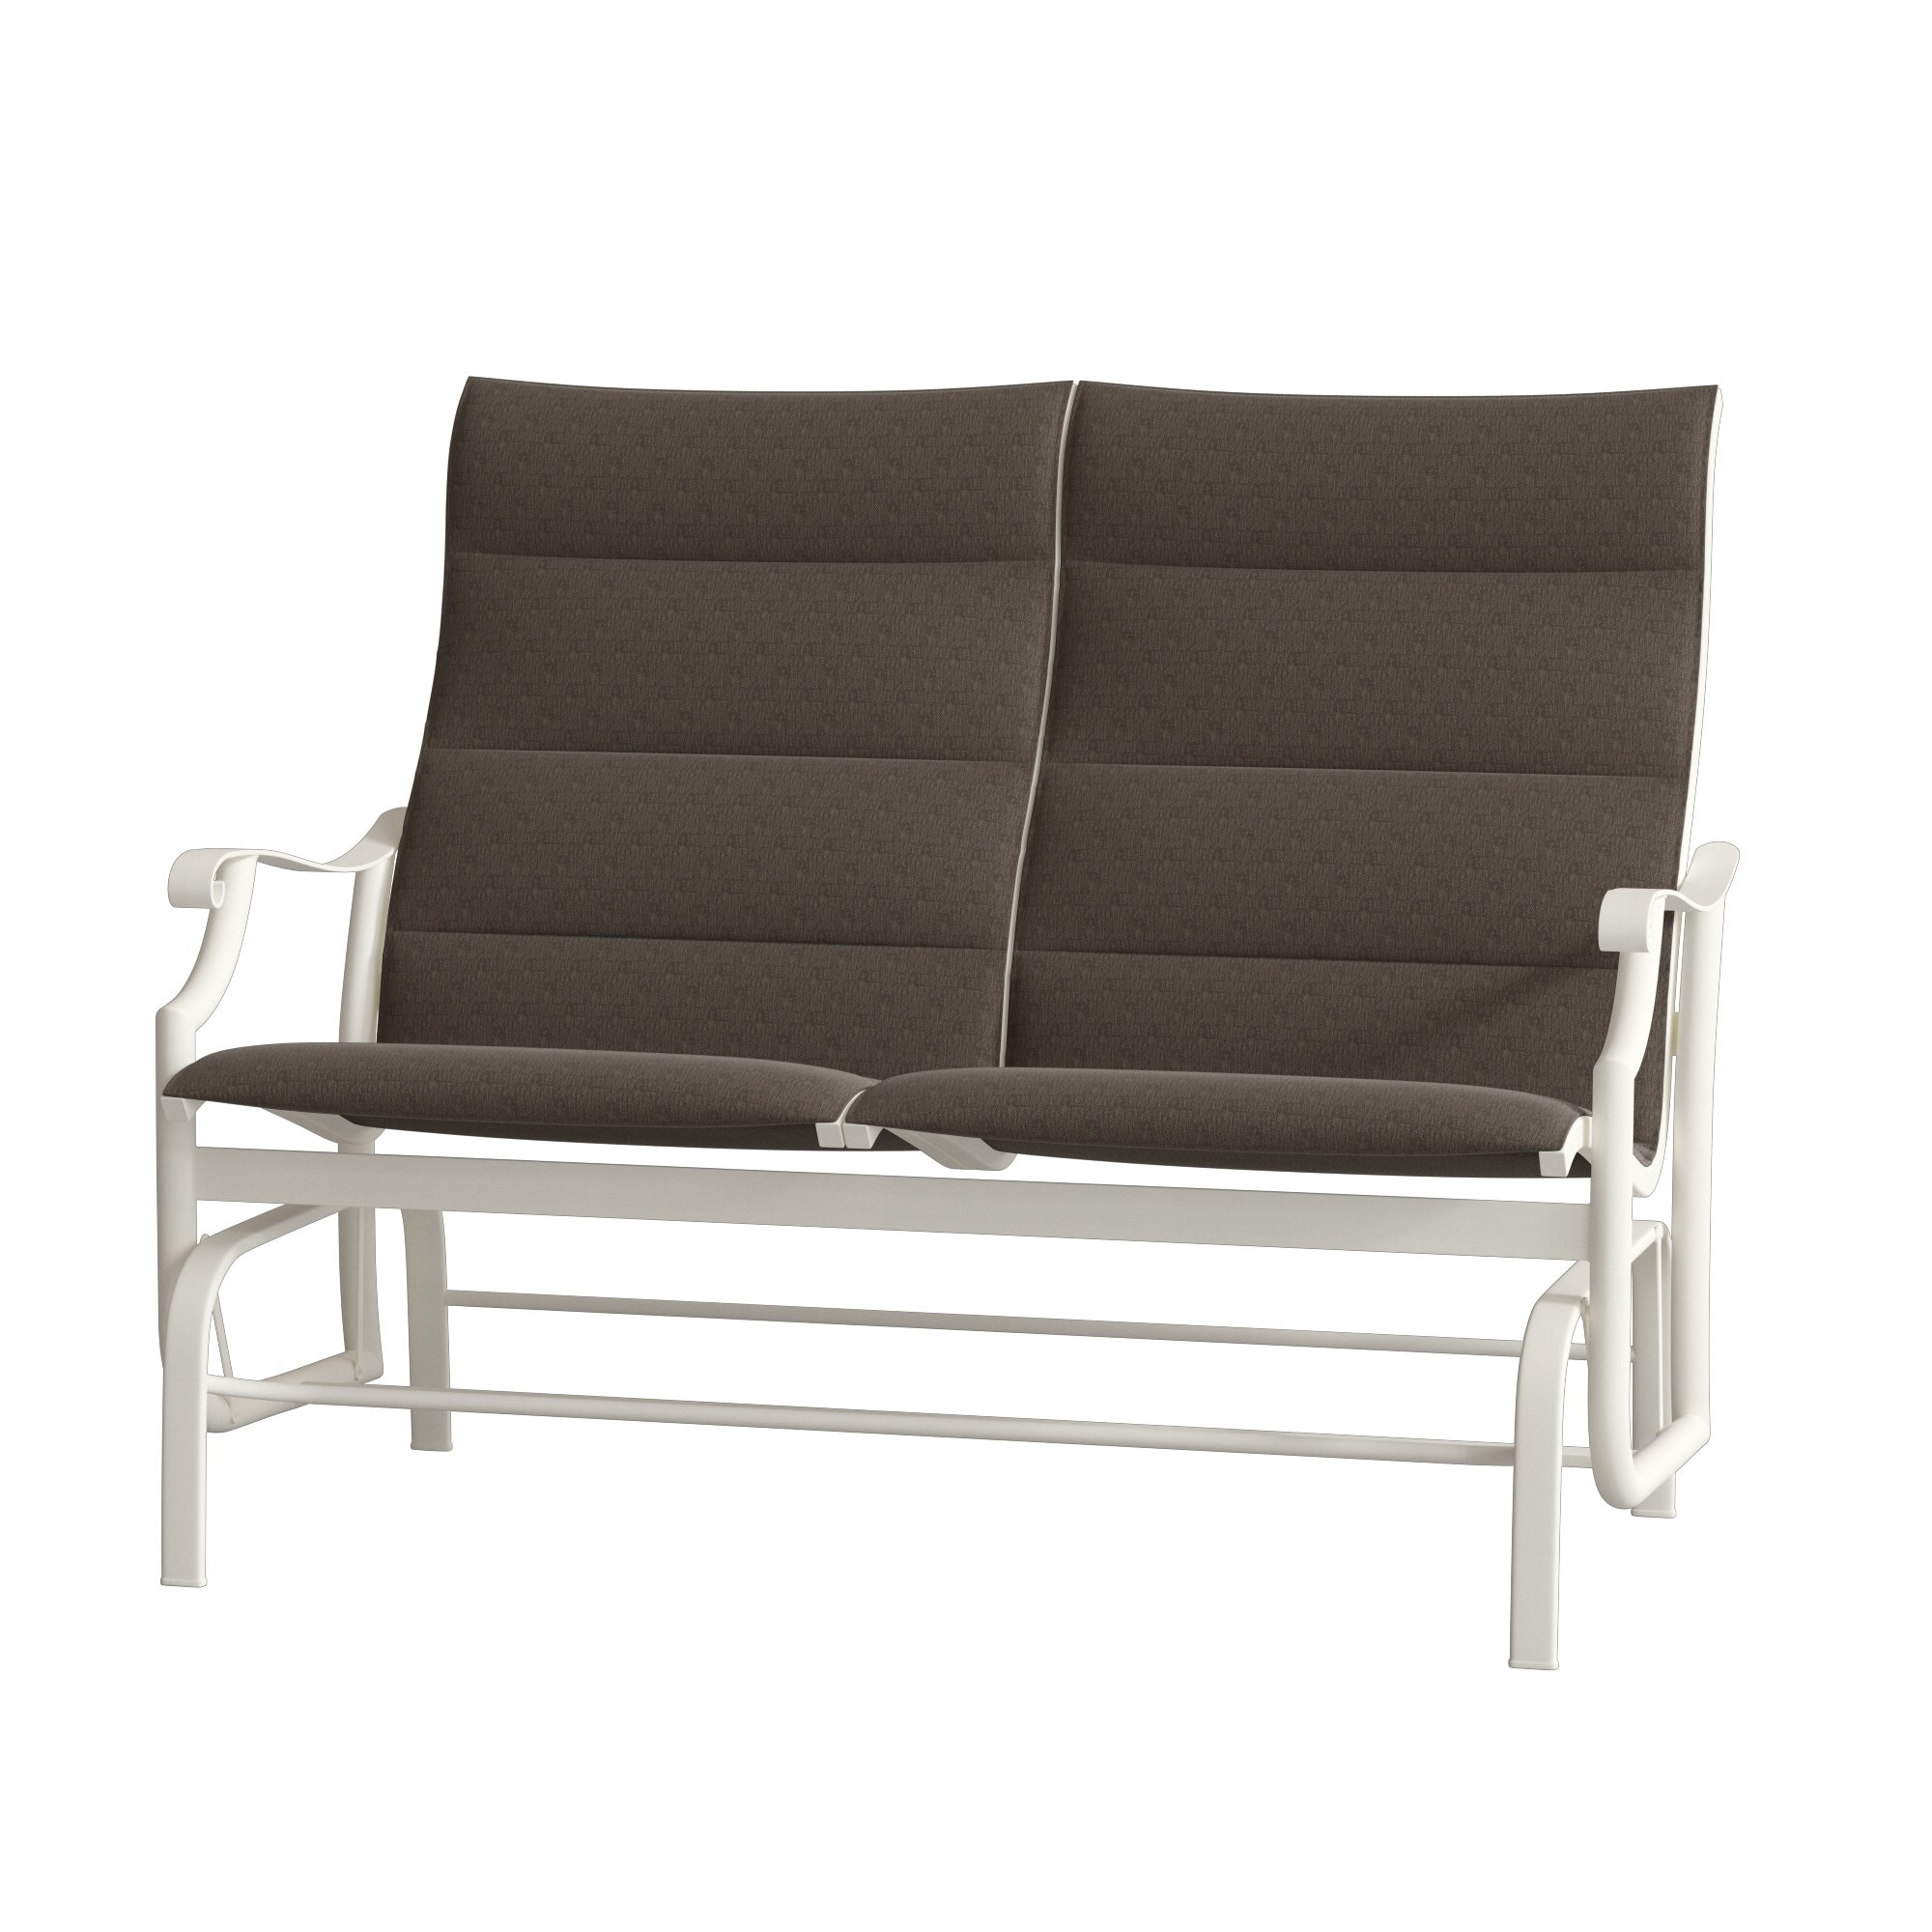 Widely Used Padded Sling Double Glider Benches Intended For Montreux Padded Sling Loveseat With Cushions (View 15 of 30)